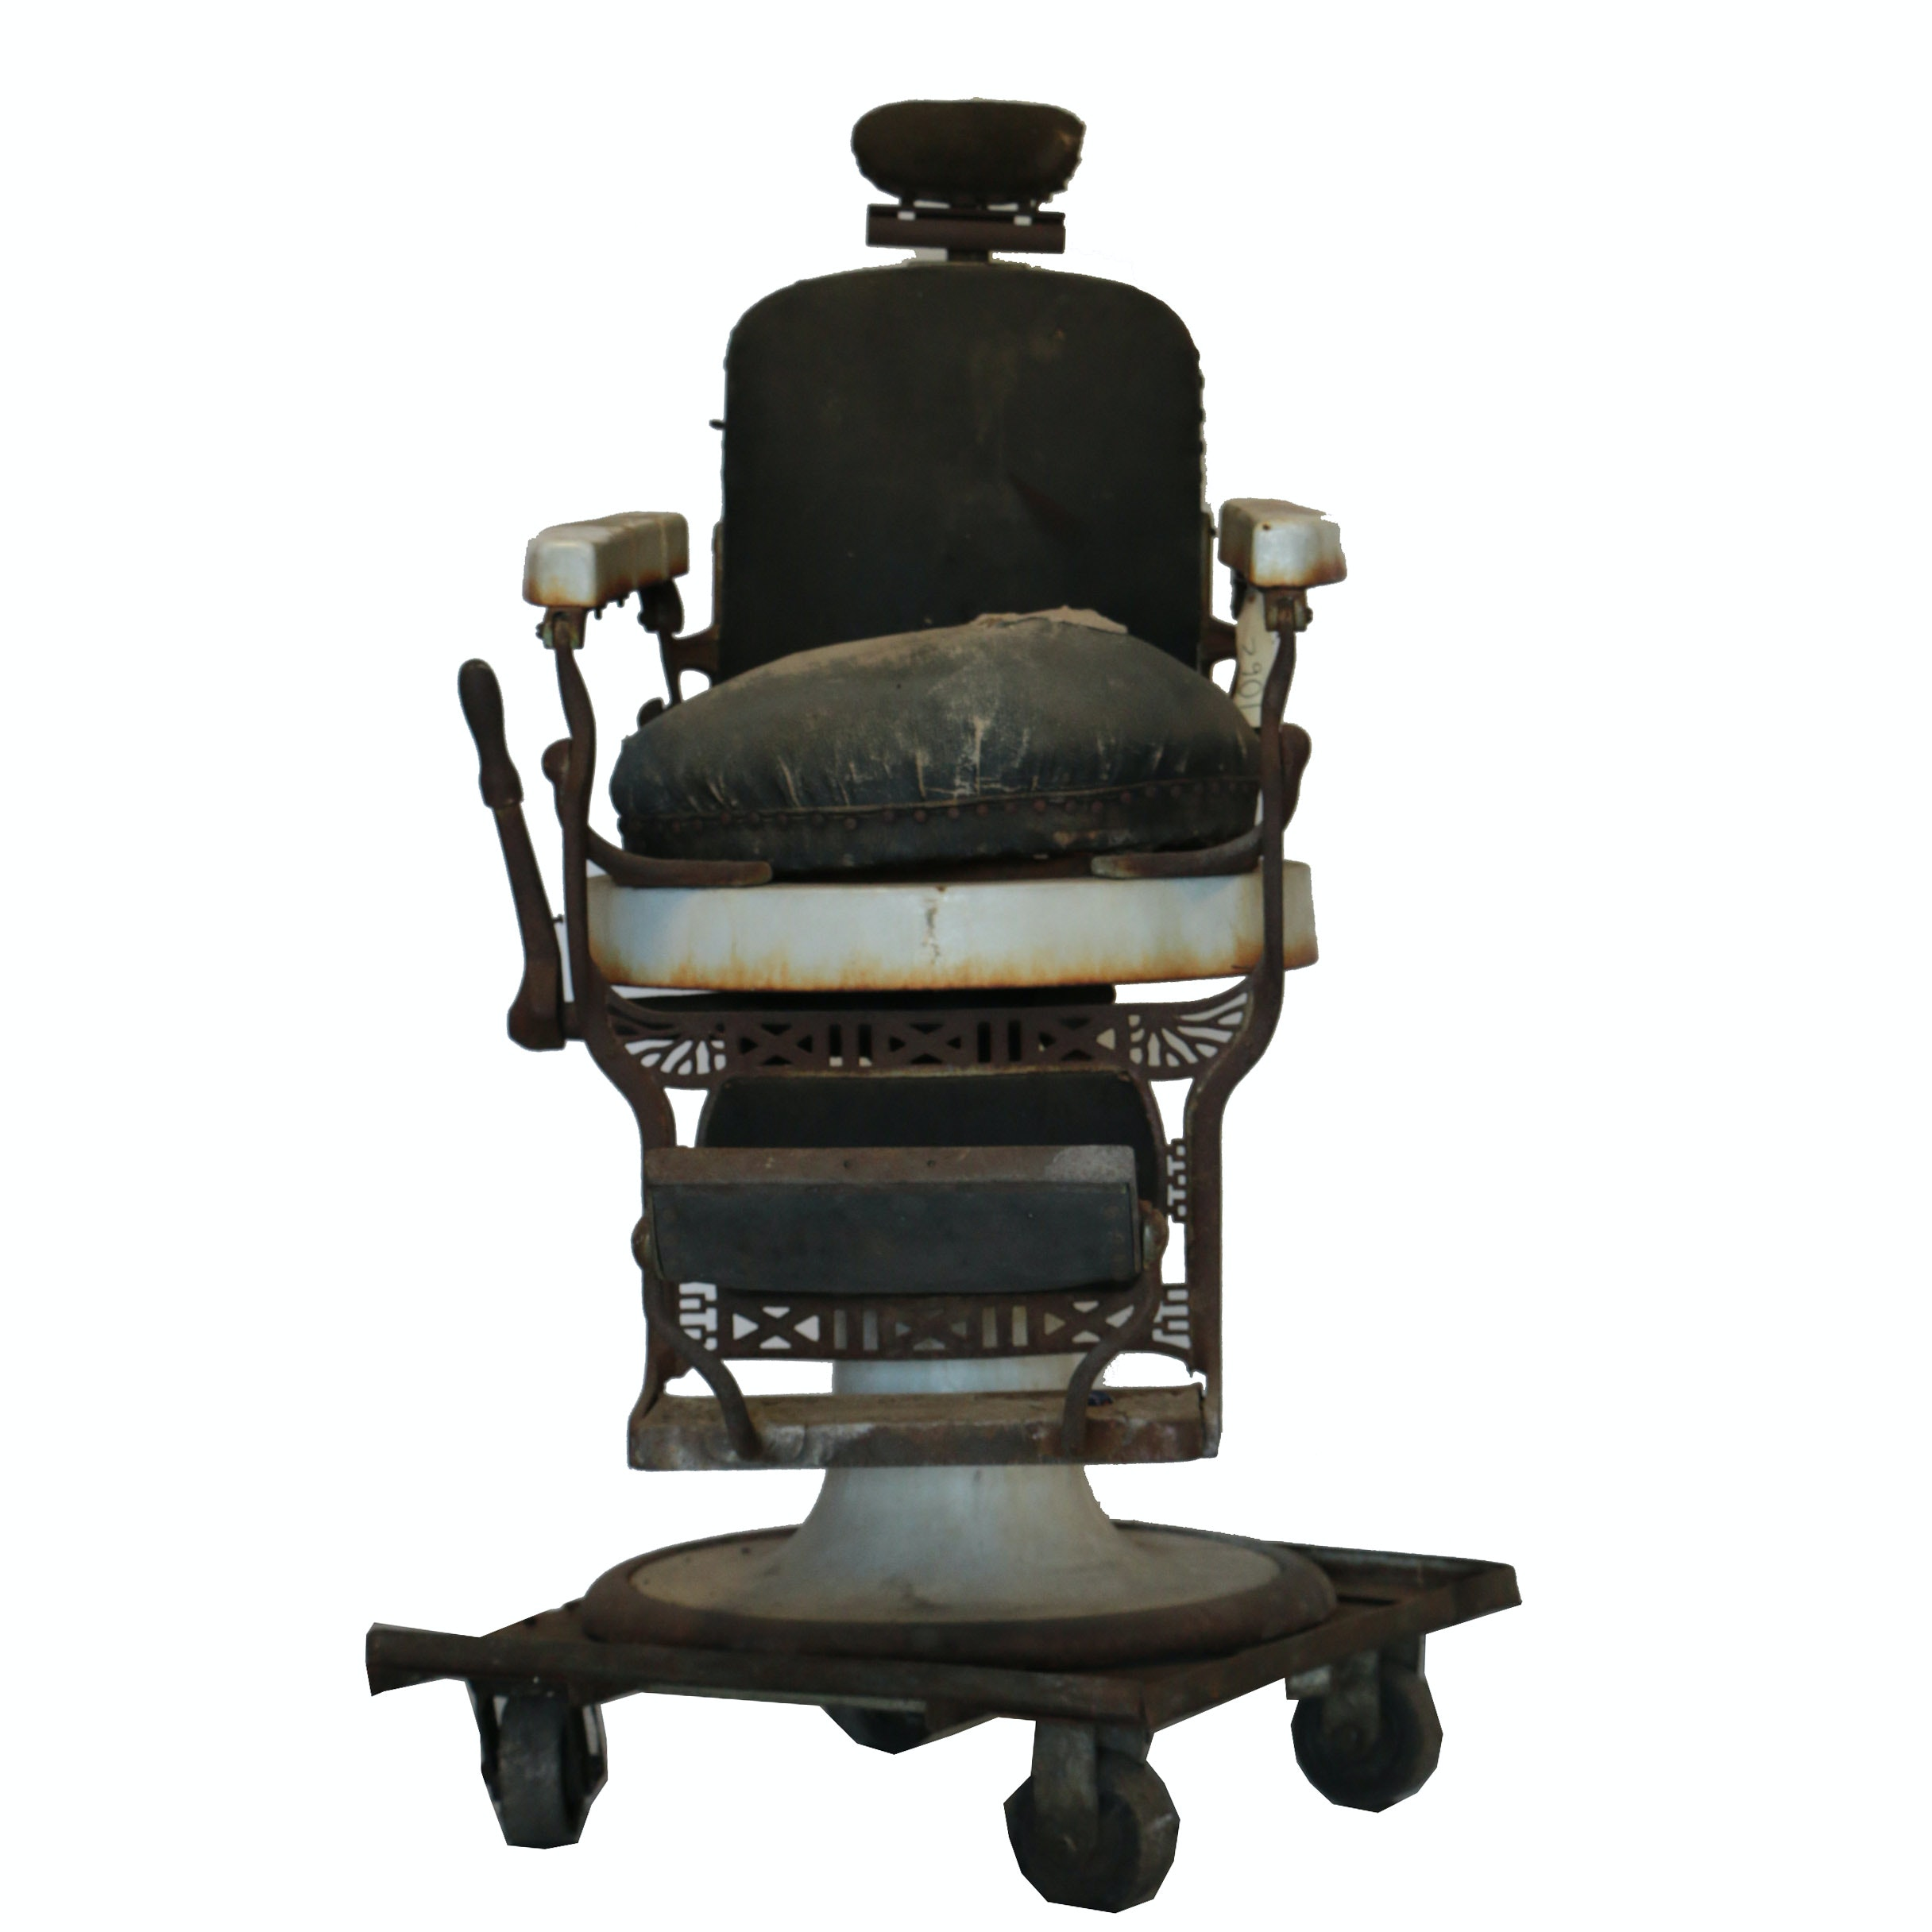 Antique Barber Chair by Koken